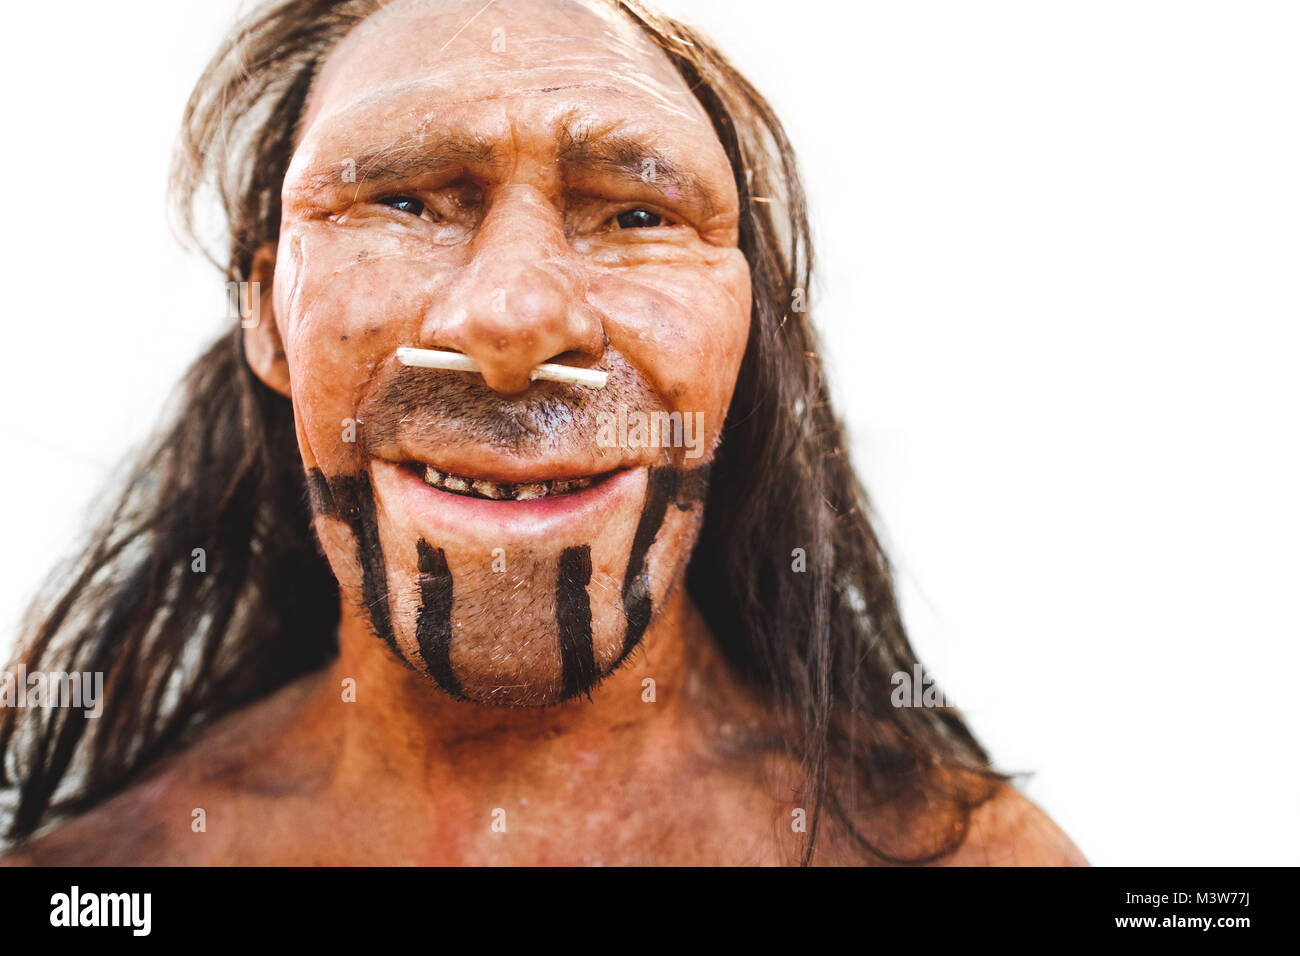 realistic prehistoric early man neanderthal reproduction portrait closeup - Stock Image